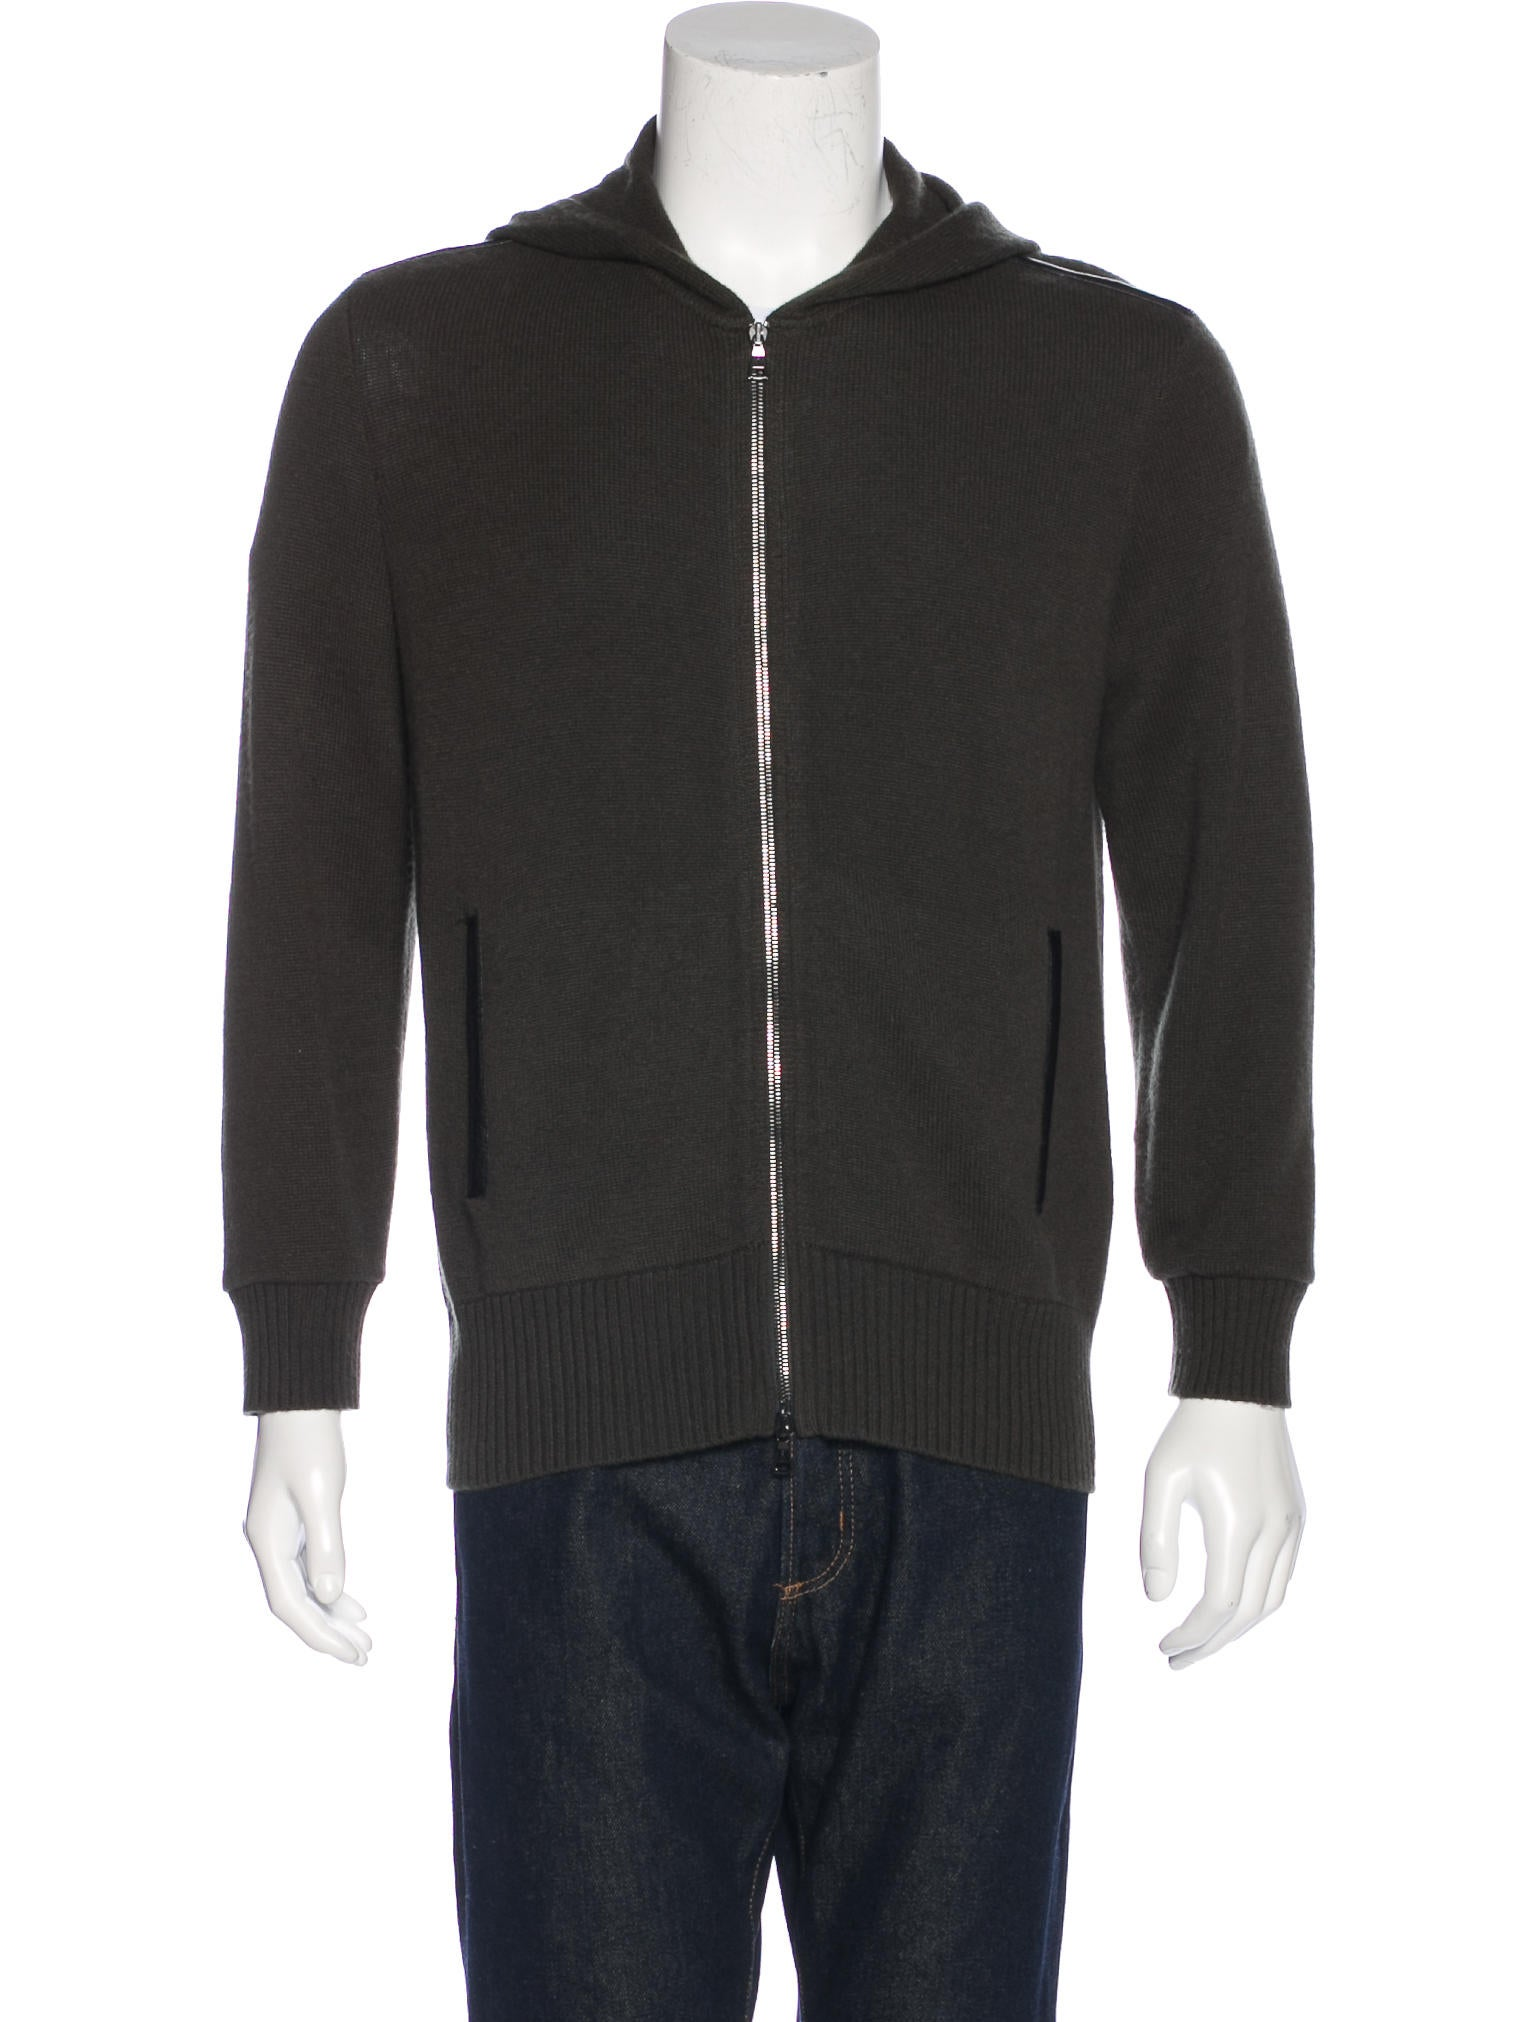 SMALL LEATHER GOODS SMALL LEATHER GOODS Tailored from a comfortable technical jersey, this iconic zip-up travel hoodie features a metallic LV Circle medallion for a discrete branded signature. See more See less Please, select a size. Size XS XS.